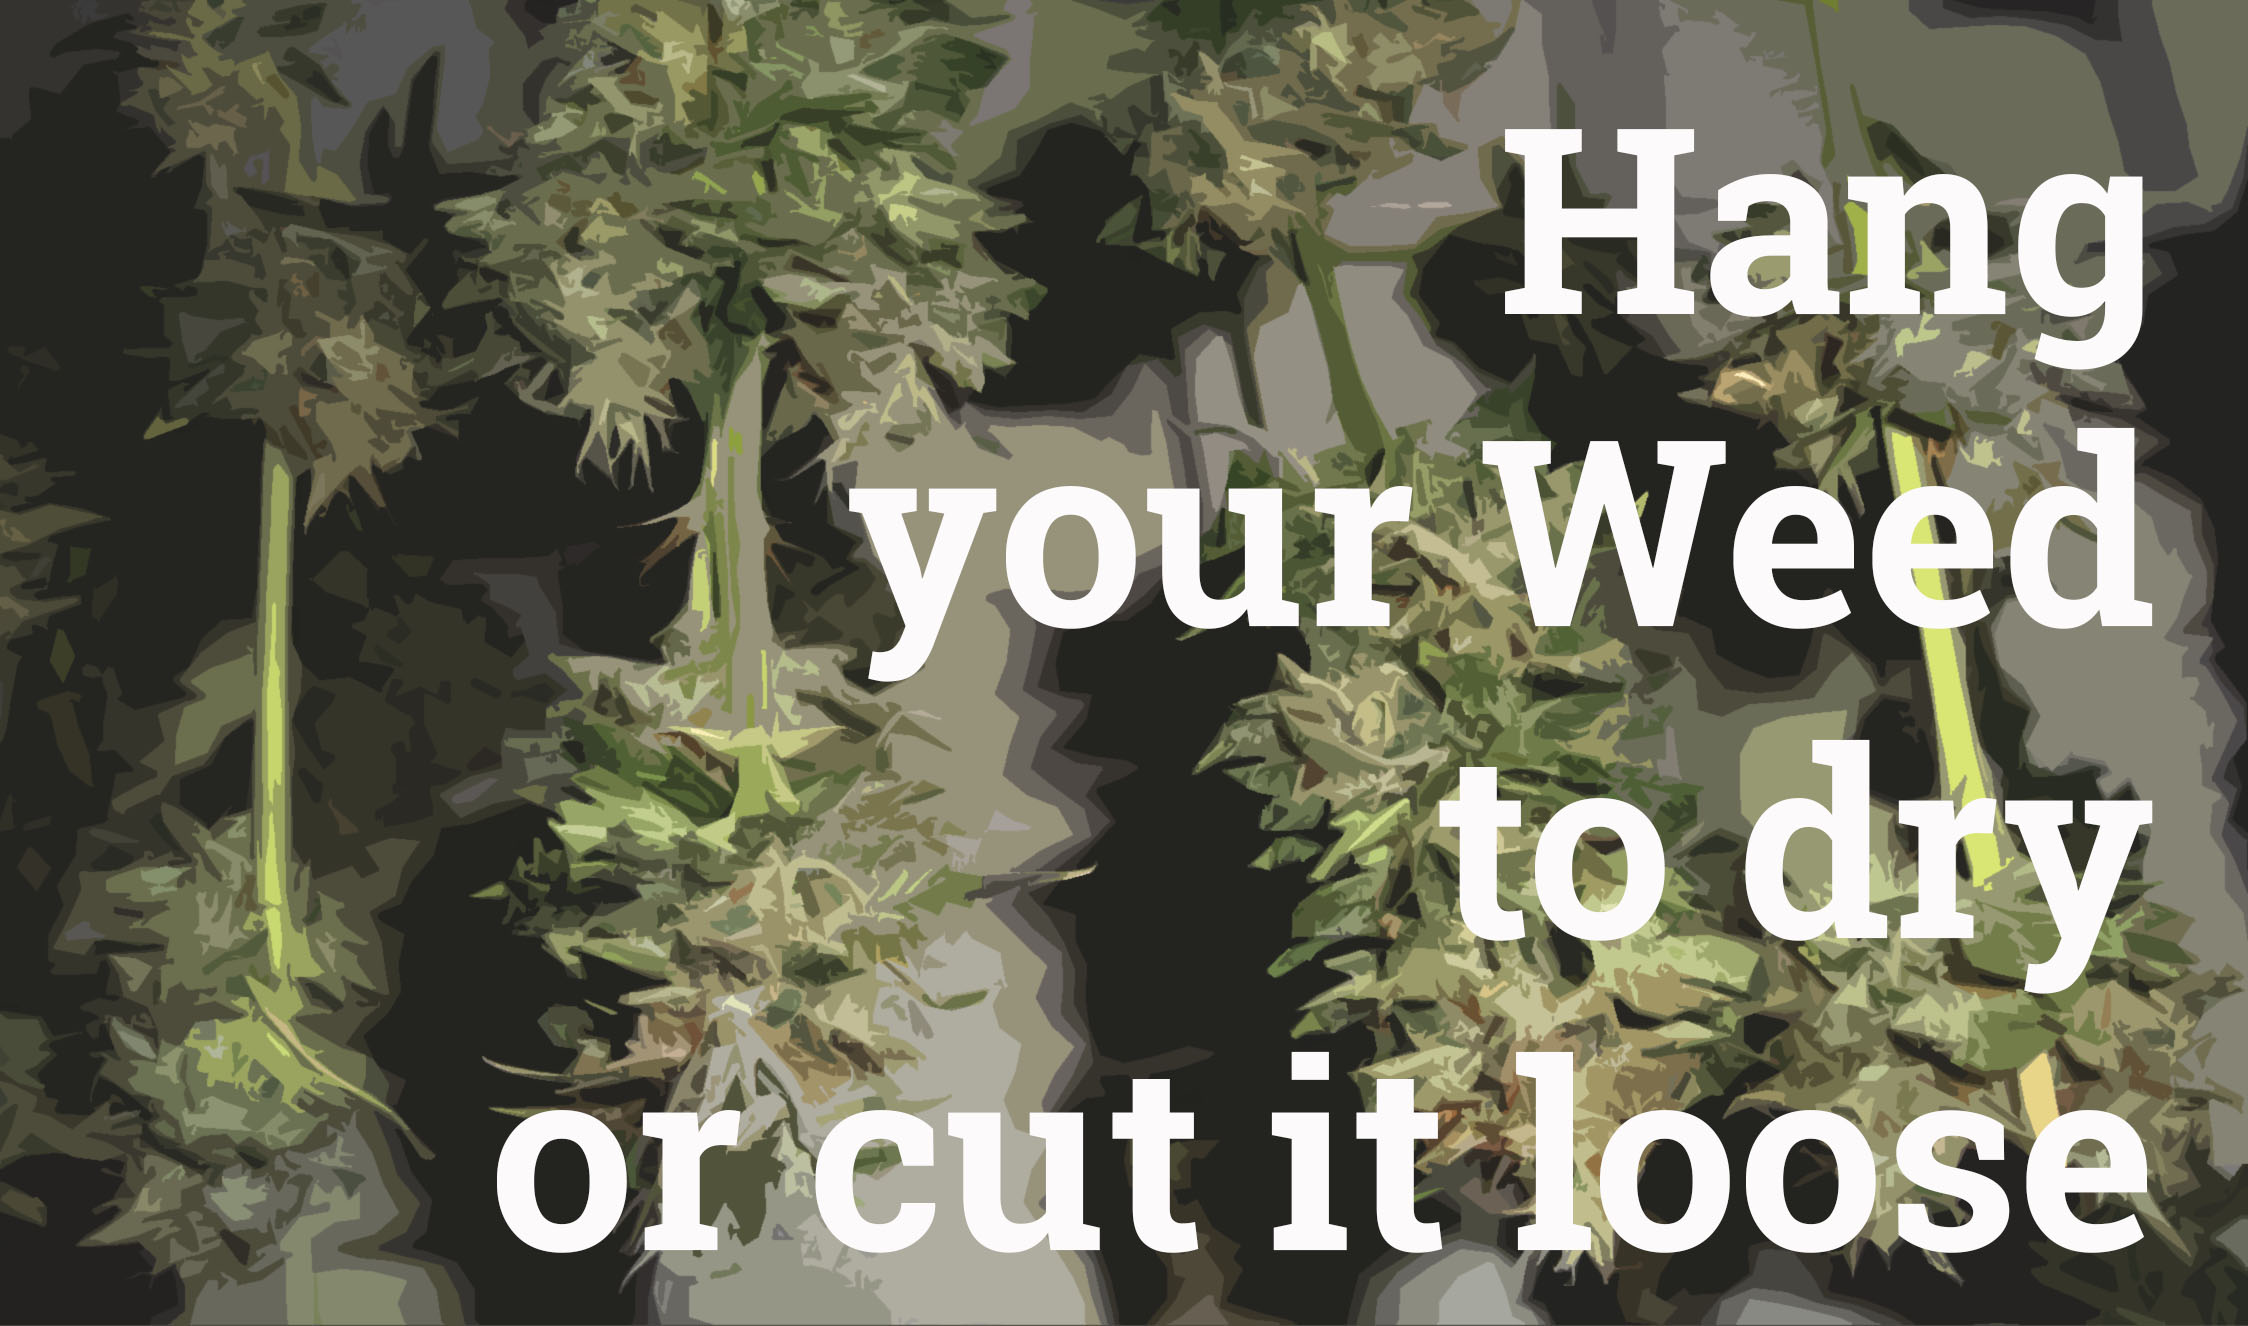 Cutting weed trimming cannabis carefully